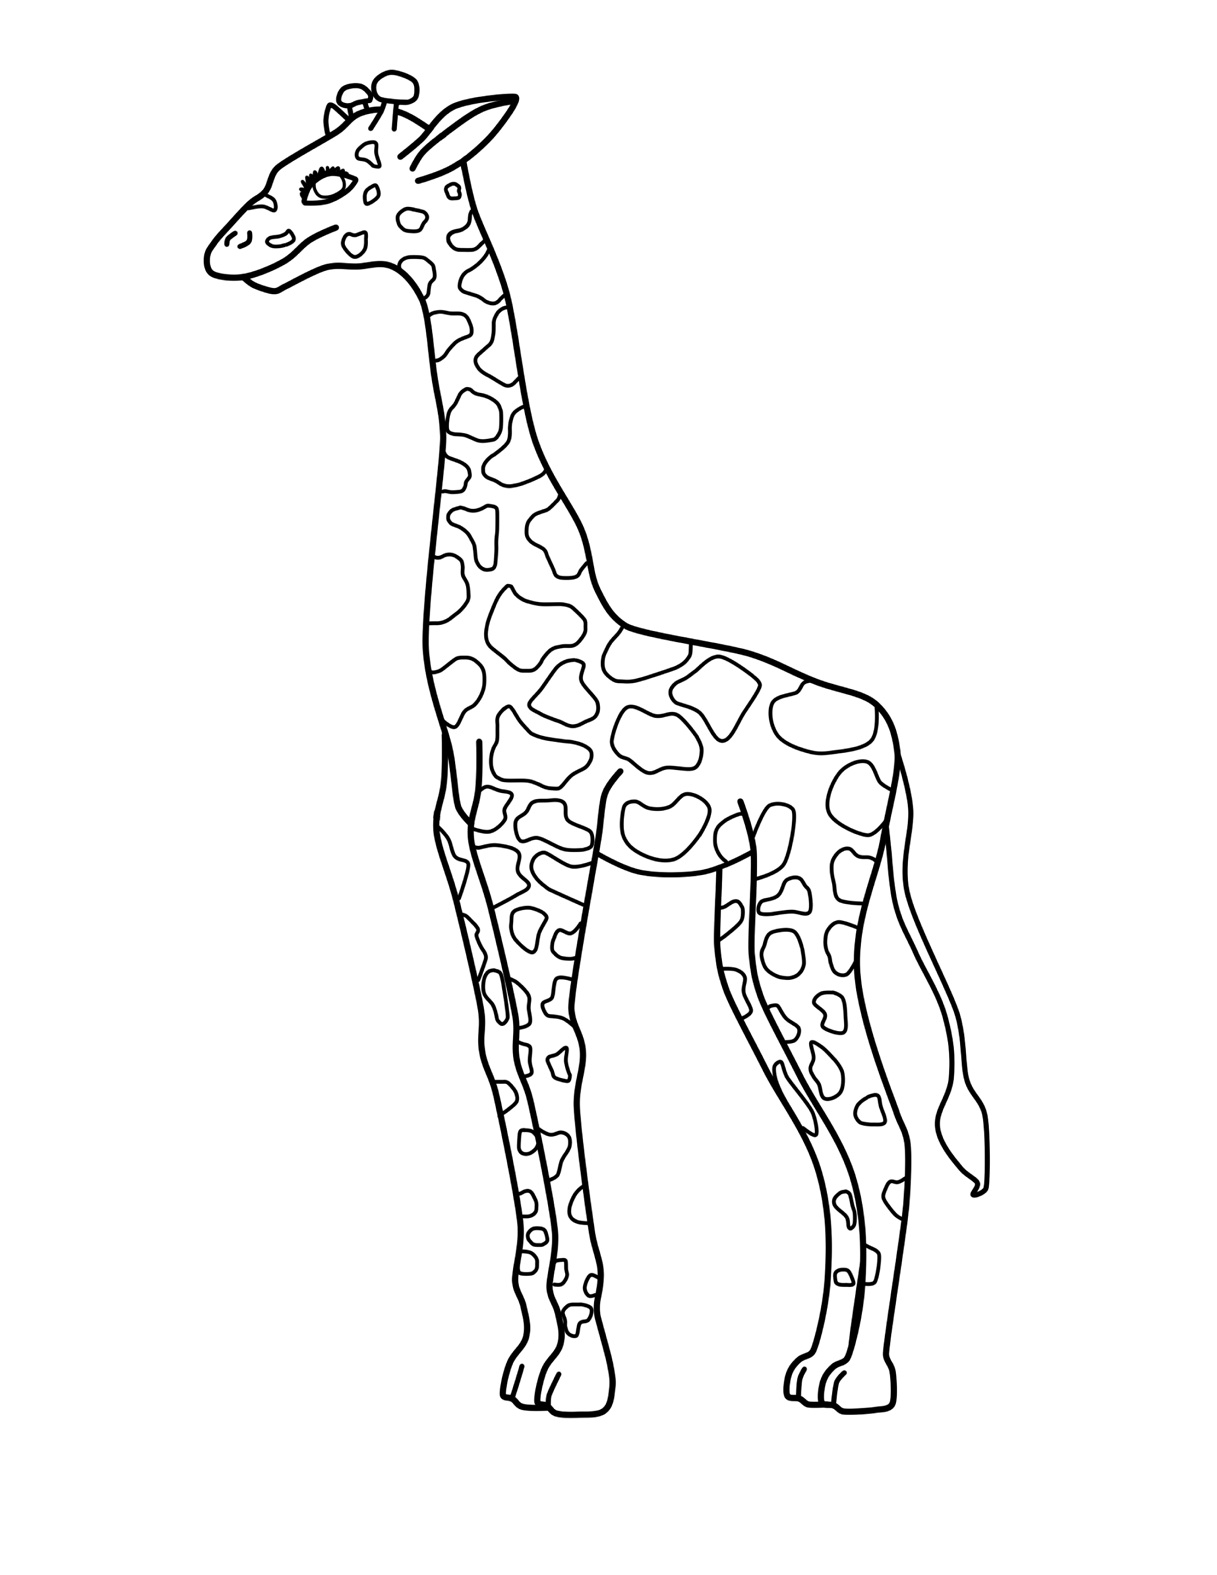 Giraffe Drawing Easy At Getdrawings